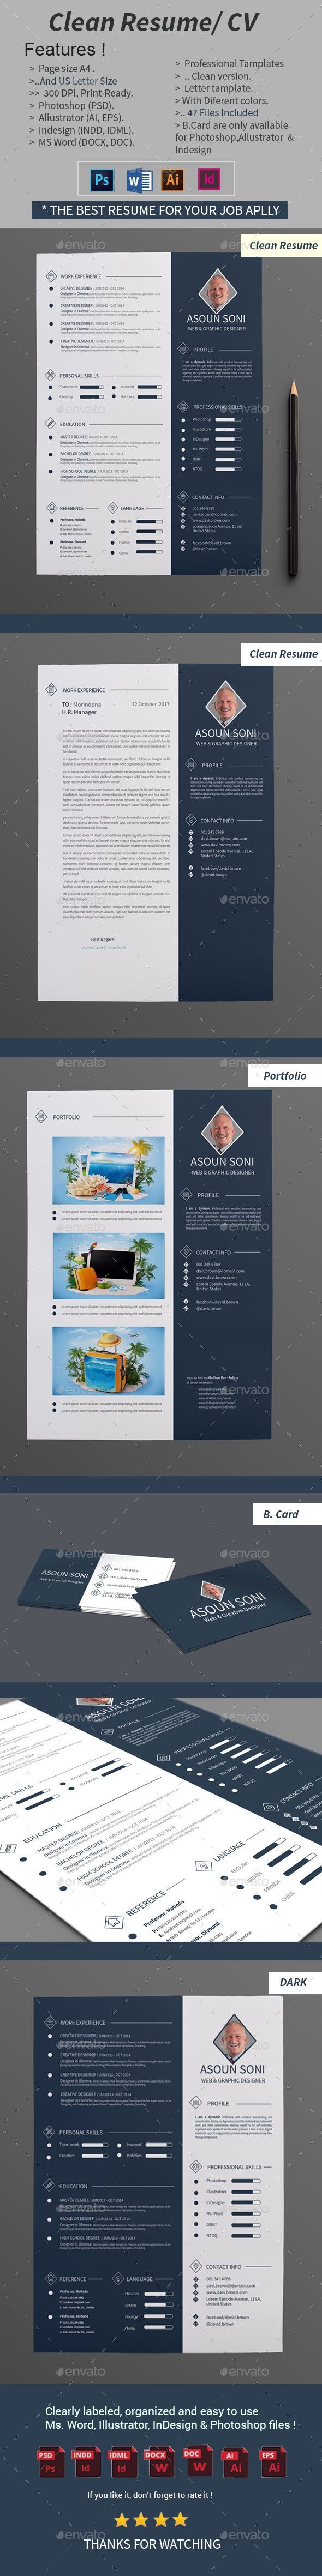 Cv Templates Microsoft Word 2010%0A Clean Resume   CV Template PSD  InDesign INDD  AI  MS Word